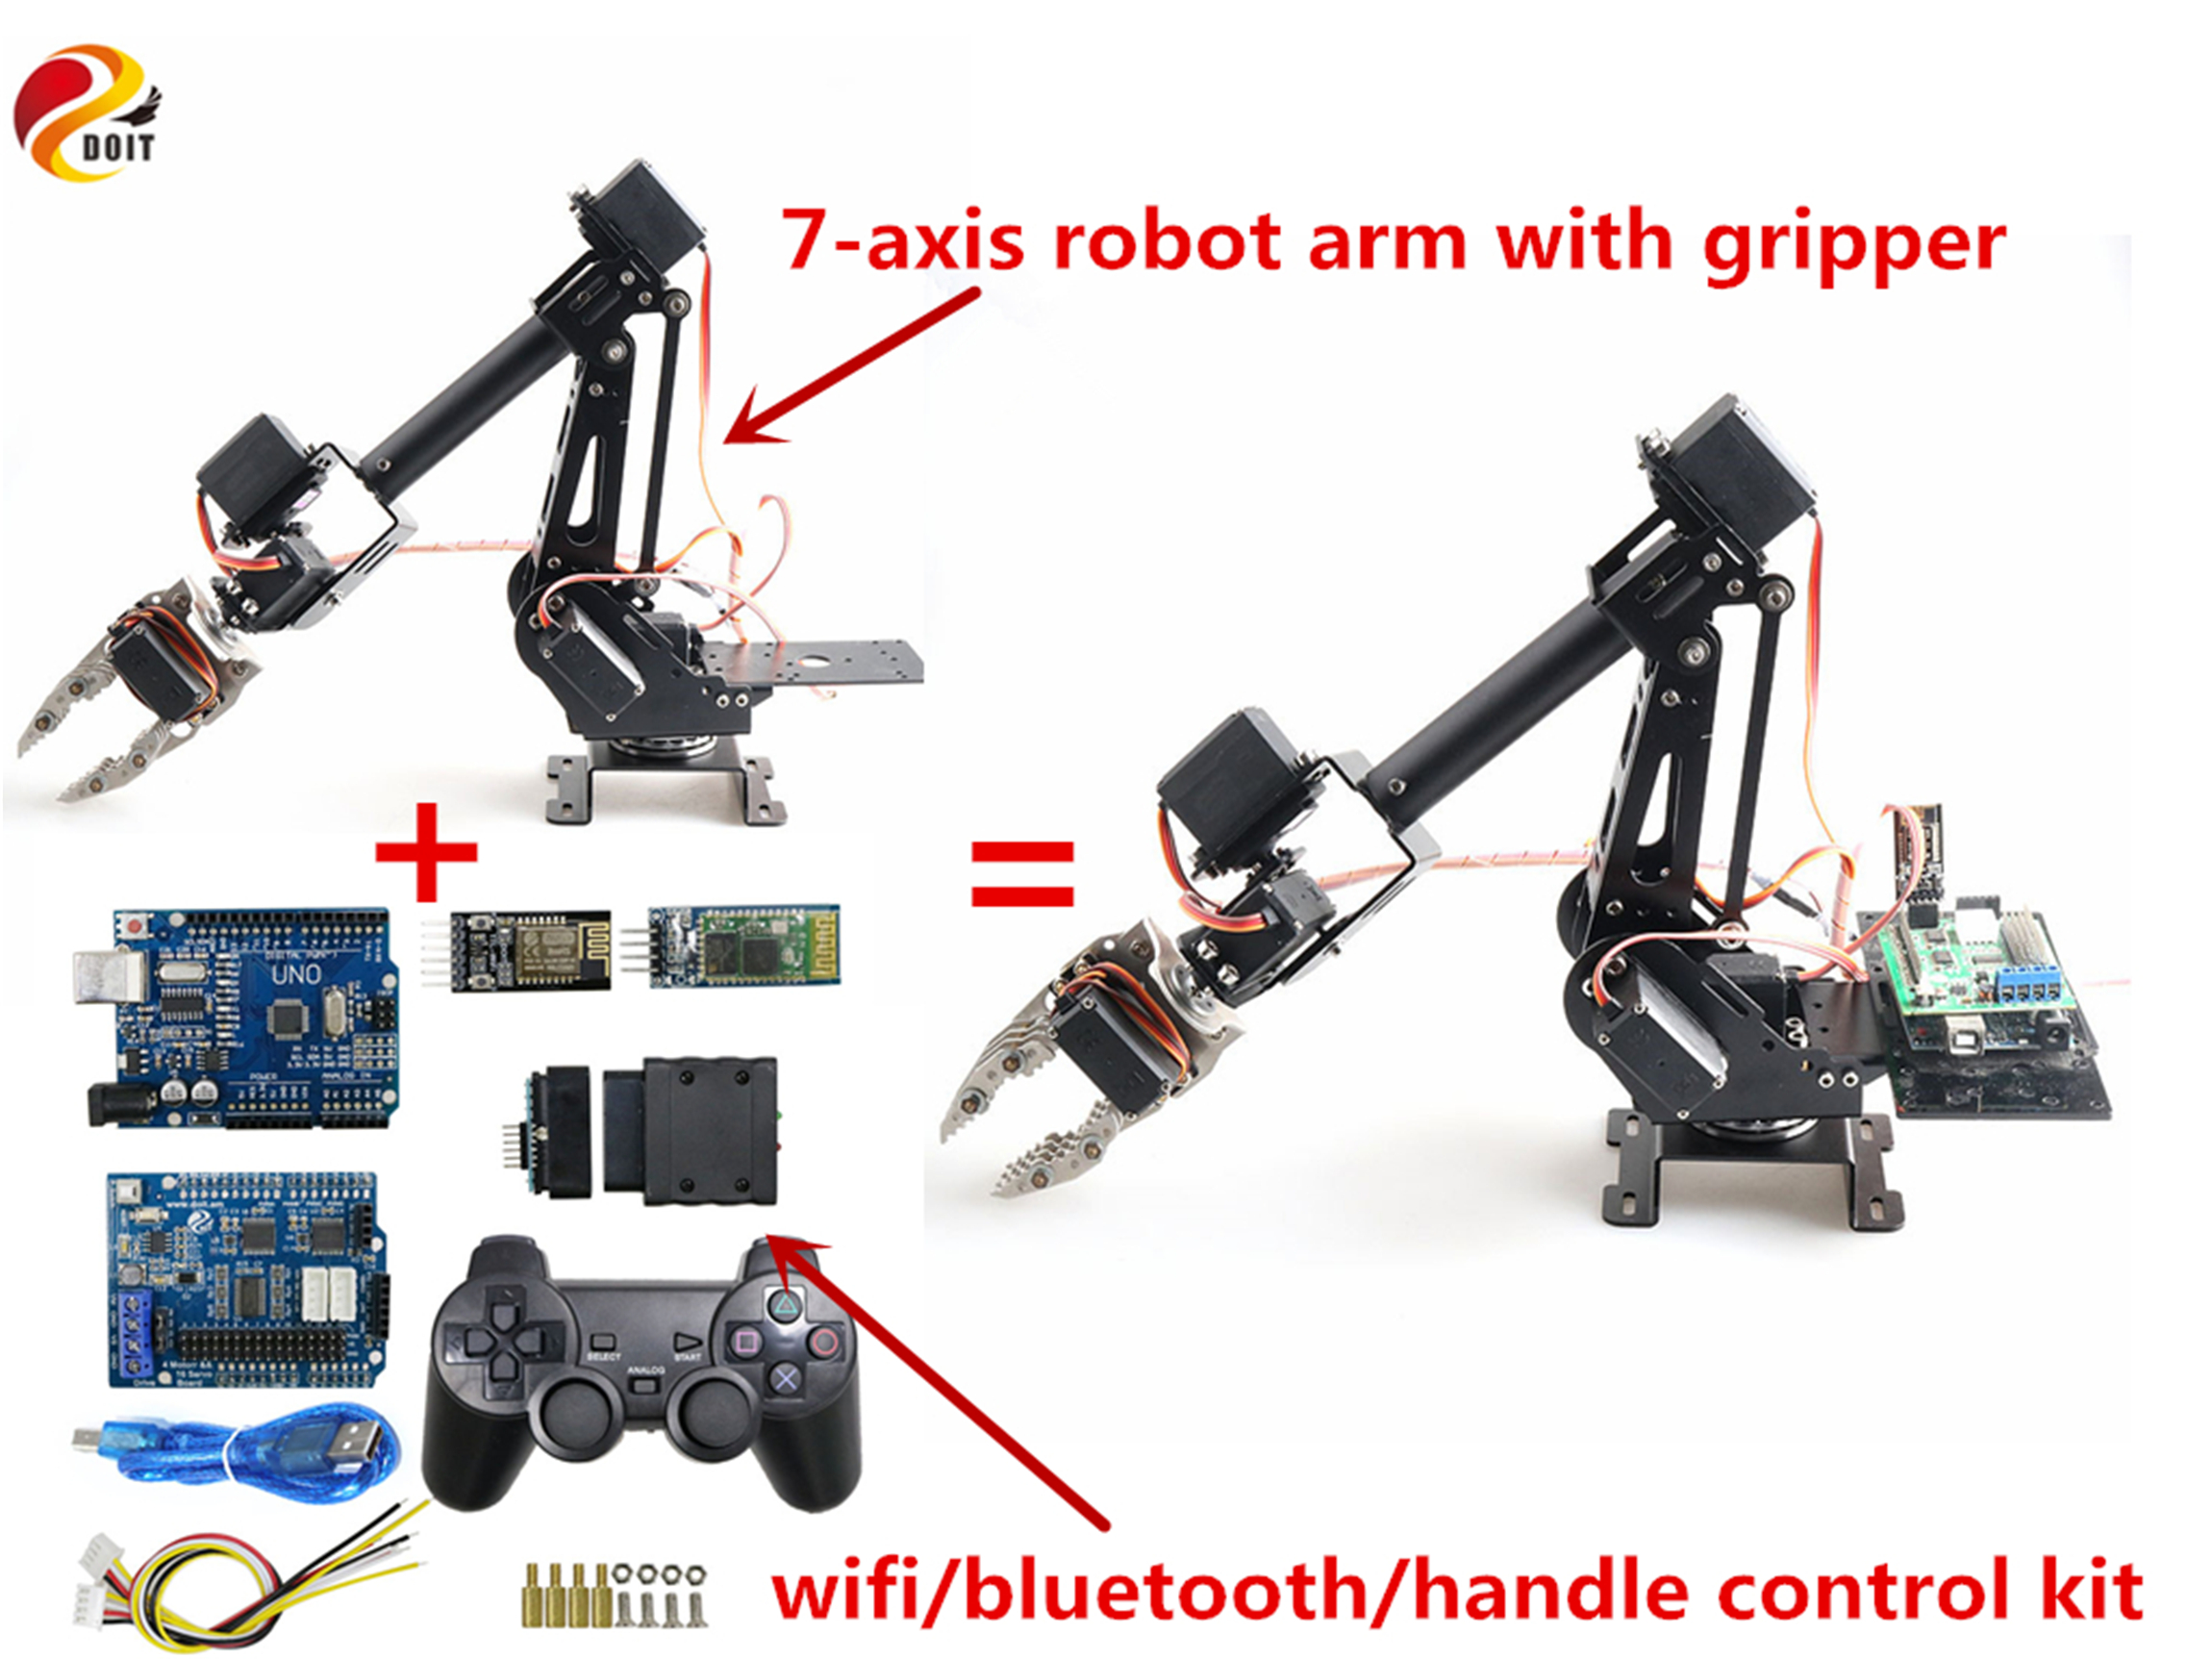 SZDOIT WIFI/Handle/Bluetooth Control 7DOF Metal Robot Arm with Gripper Kit RC Robotic with 7pcs MG996R Servos DIY for Android